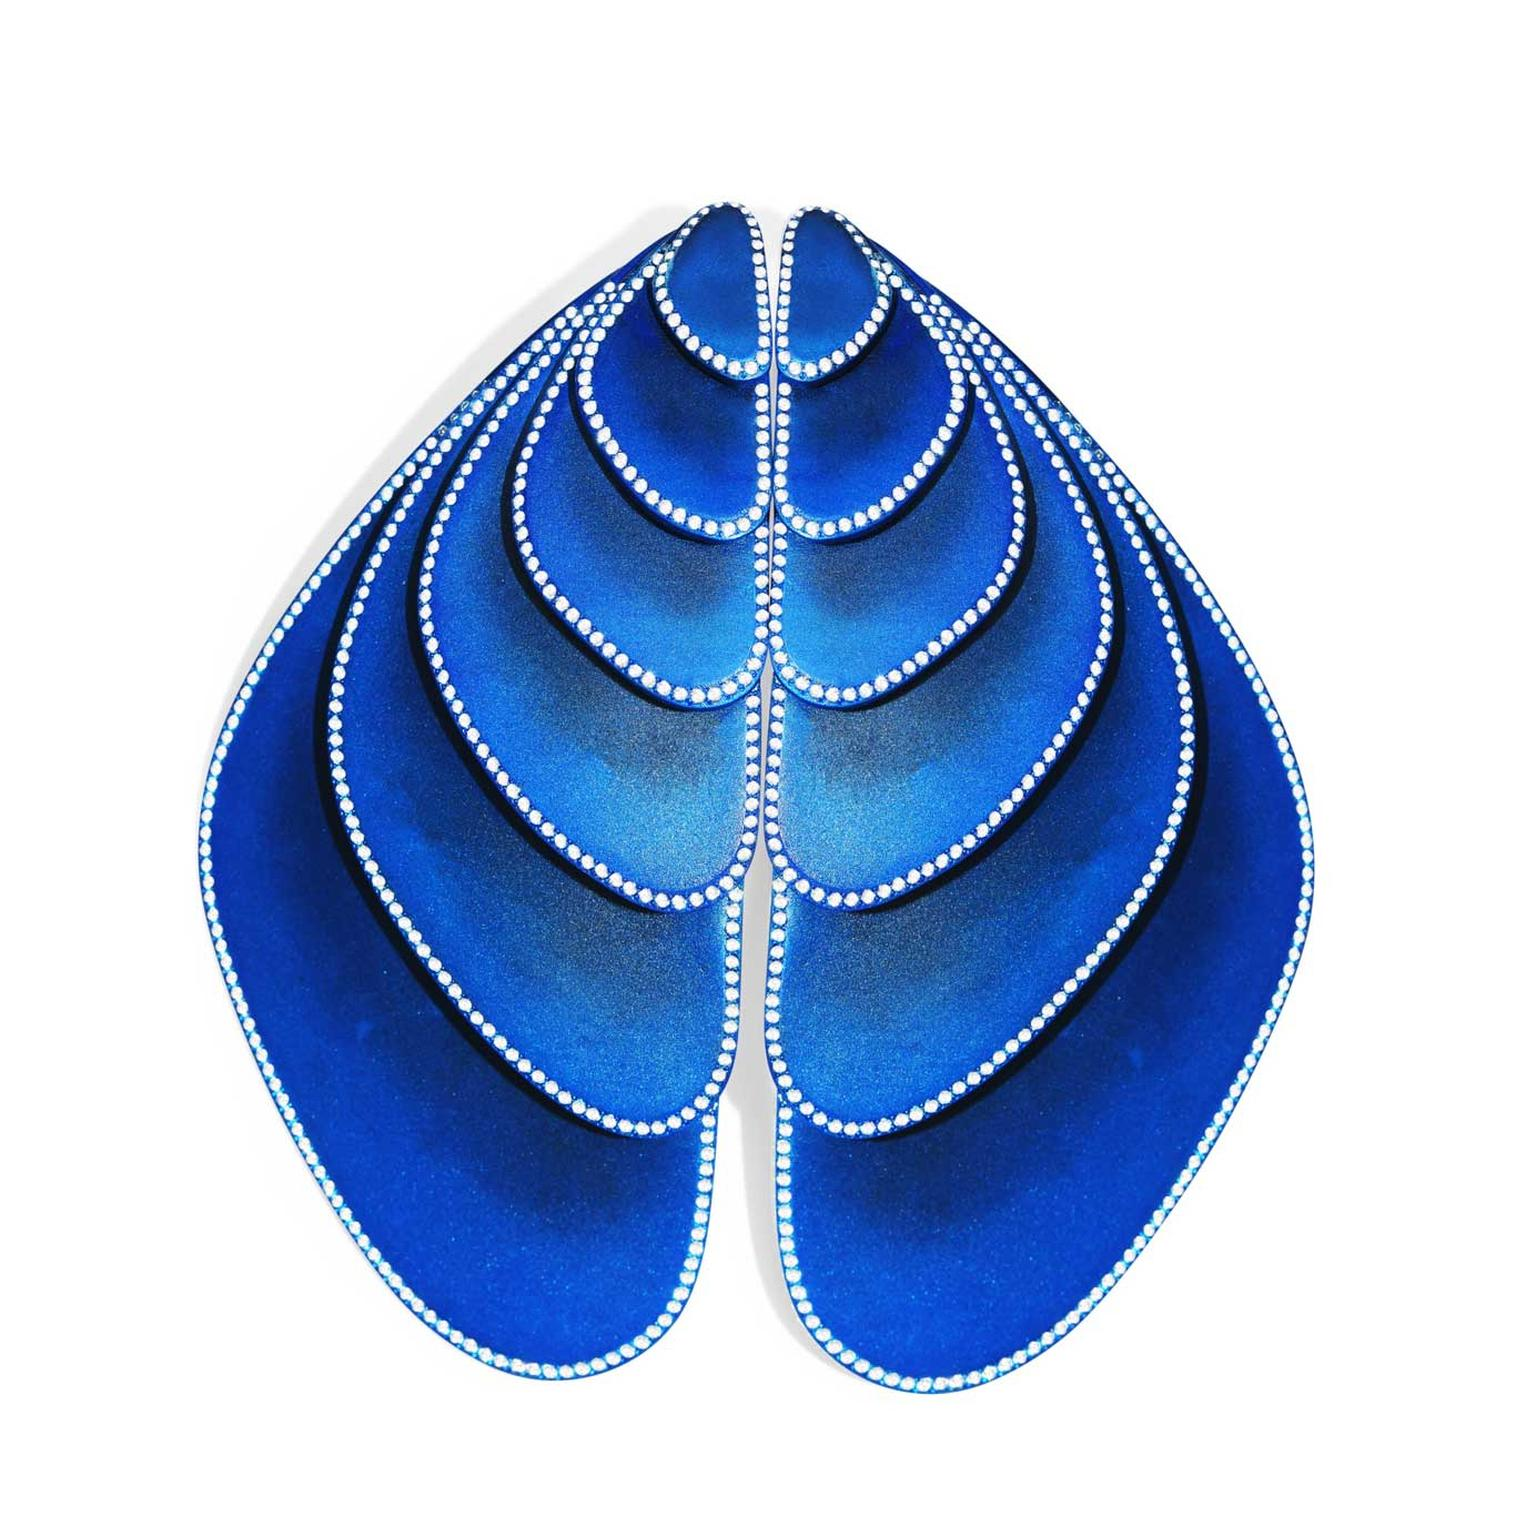 Emmanuel Tarpin blue wing earrings